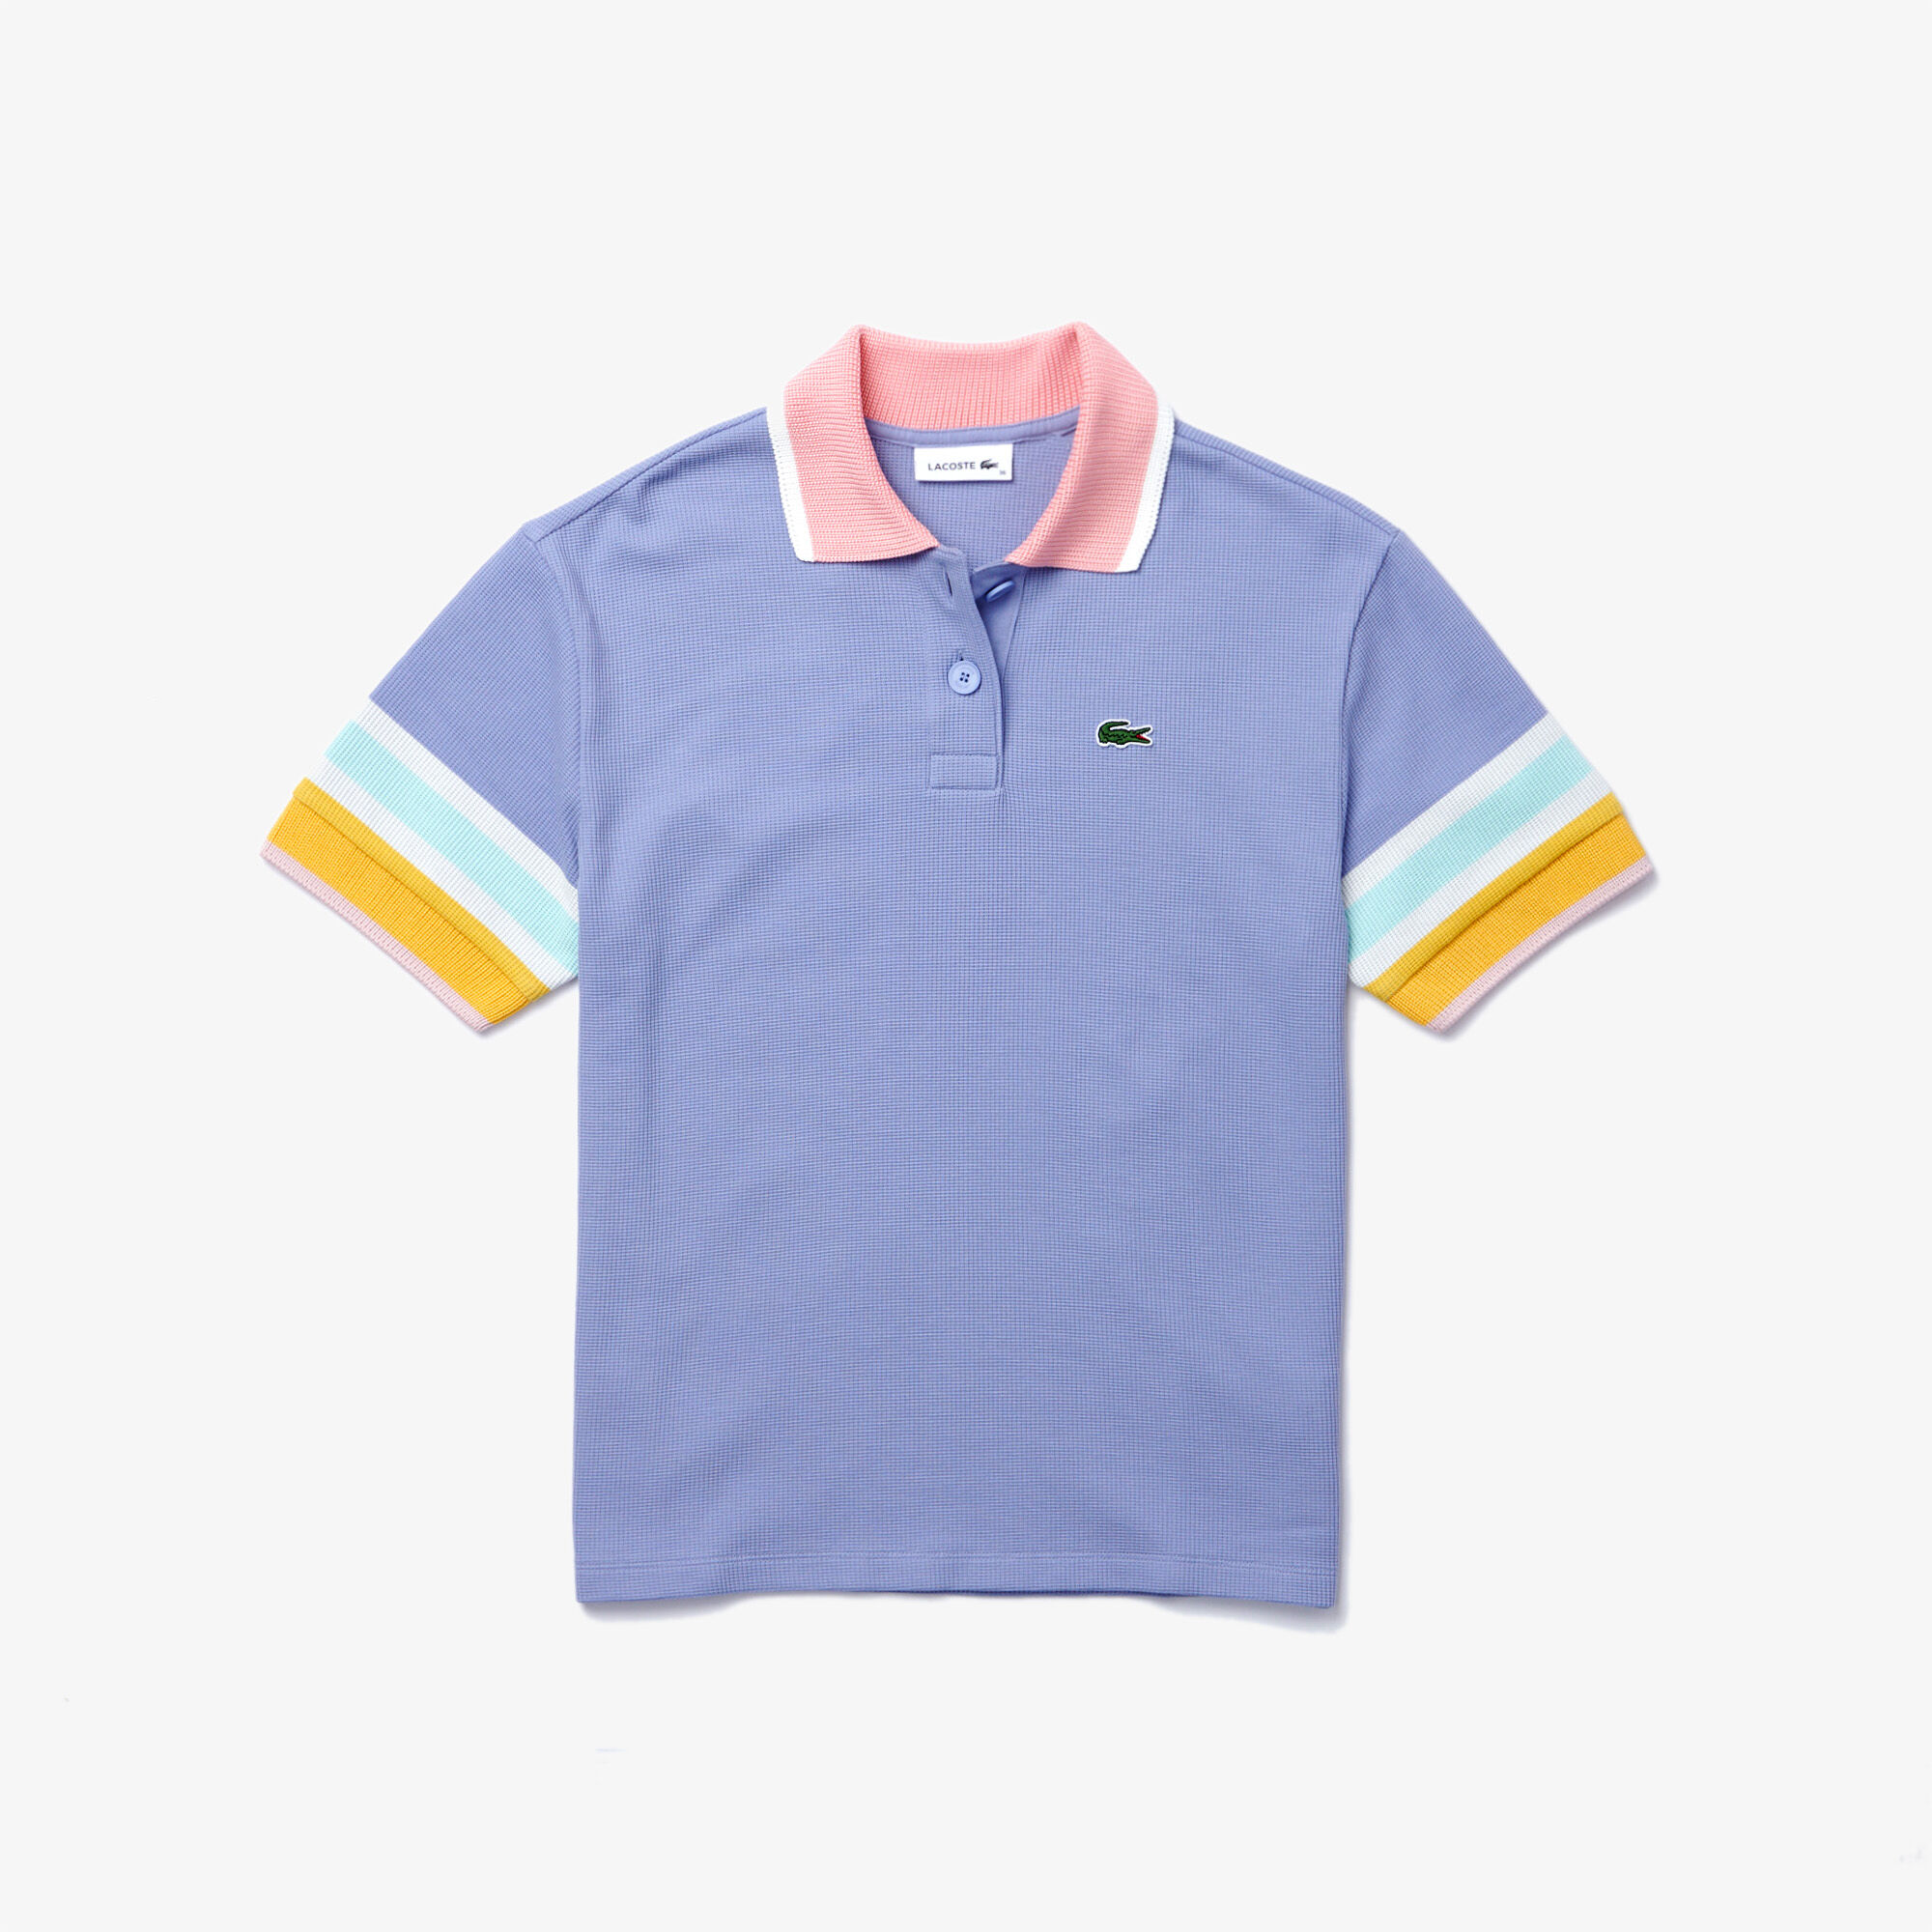 Women's Lacoste Striped Sleeve Textured Cotton Polo Shirt